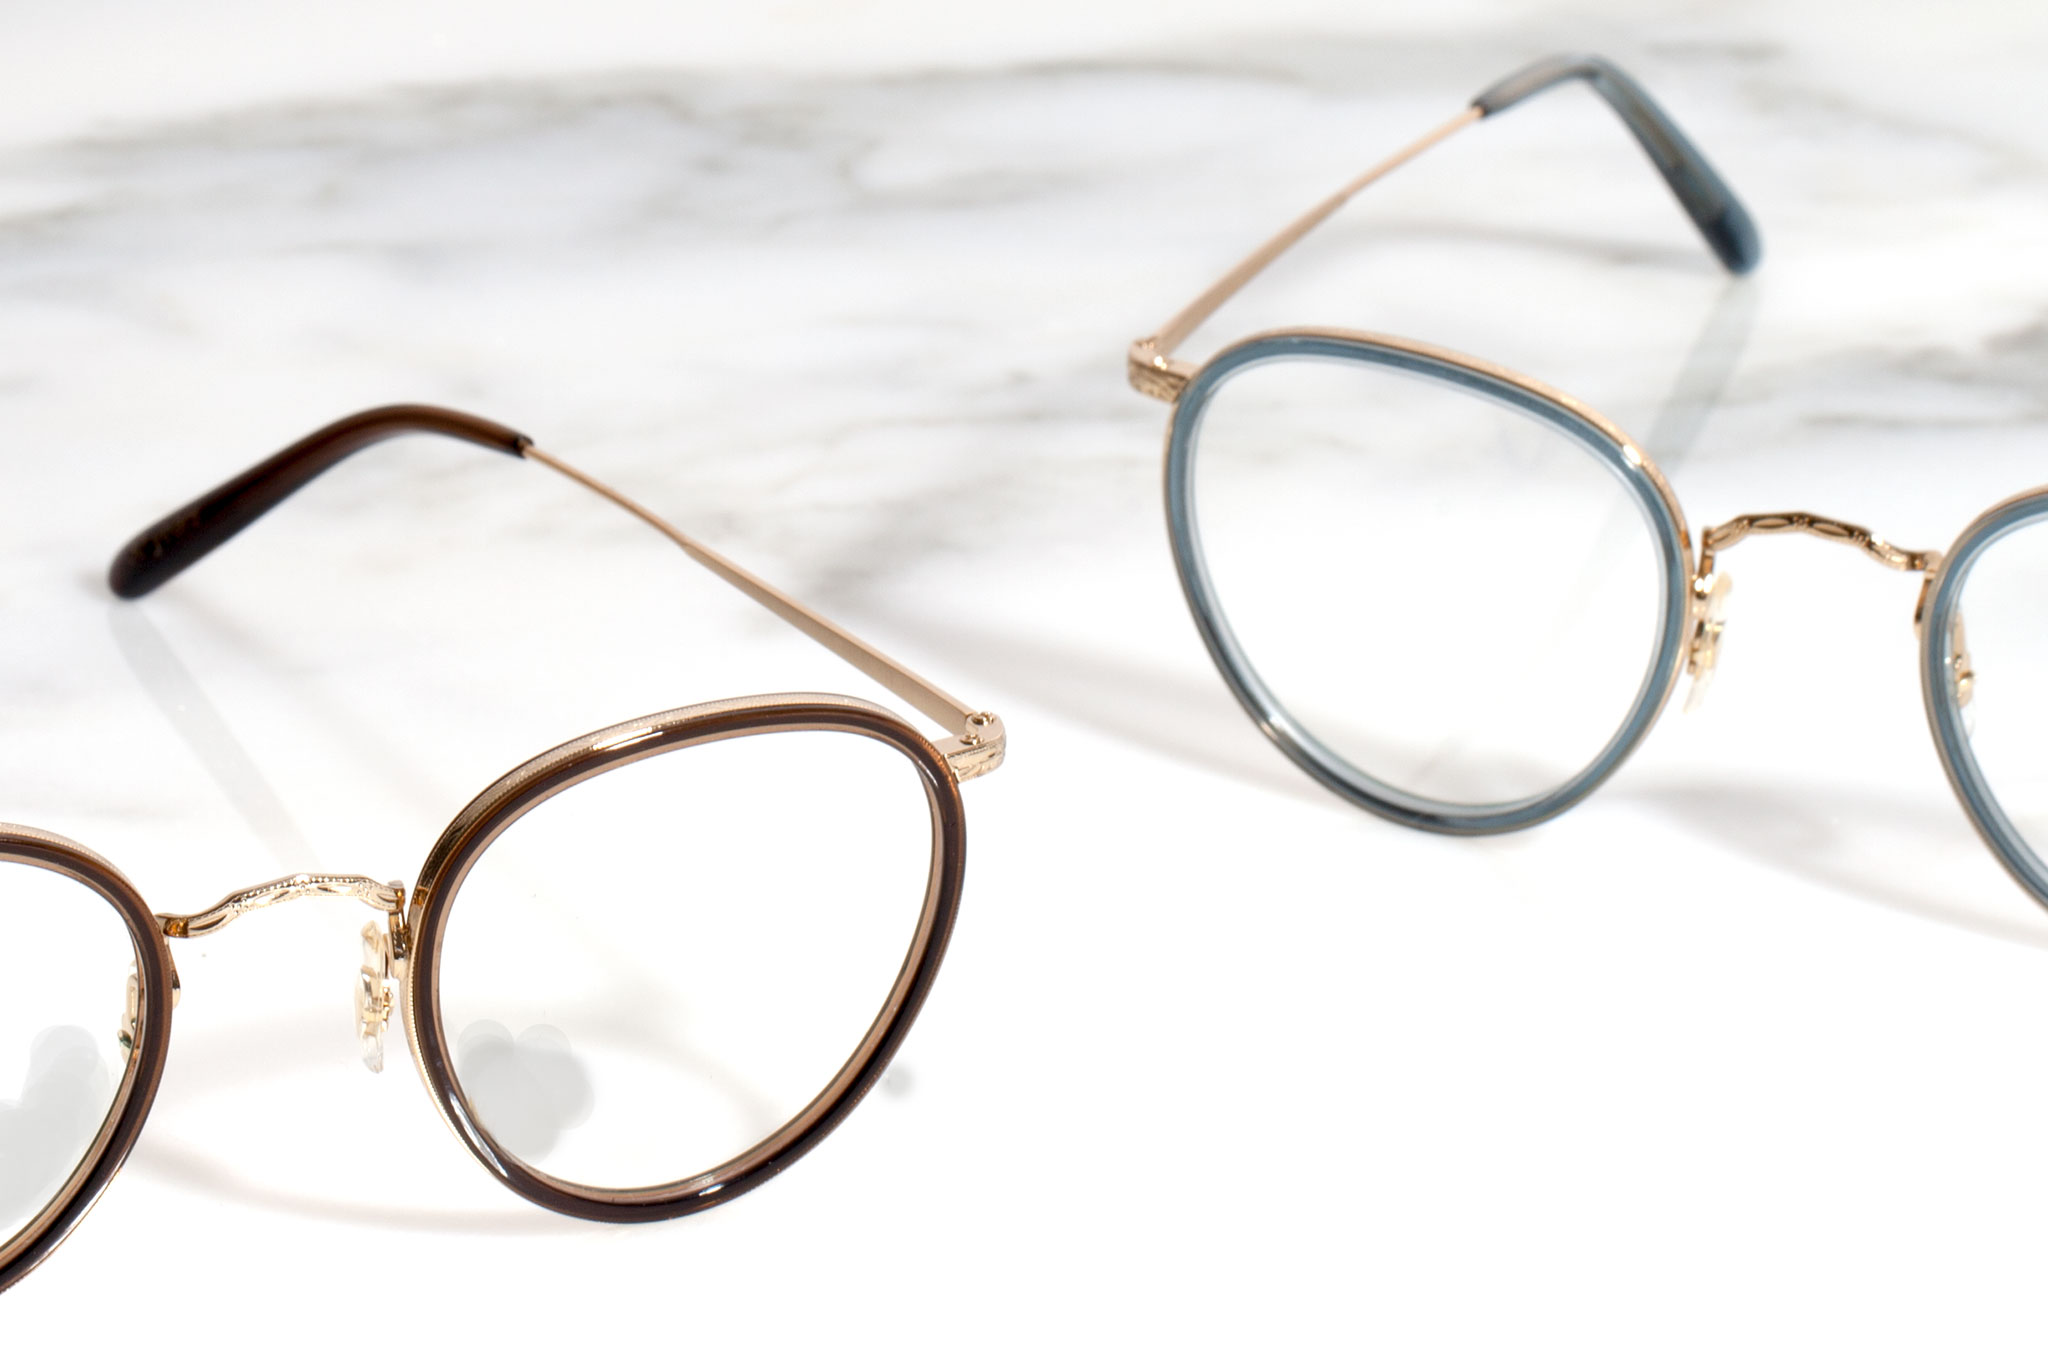 Oliver Peoples Eyewear: Frames With A Touch Of Gold | Milled